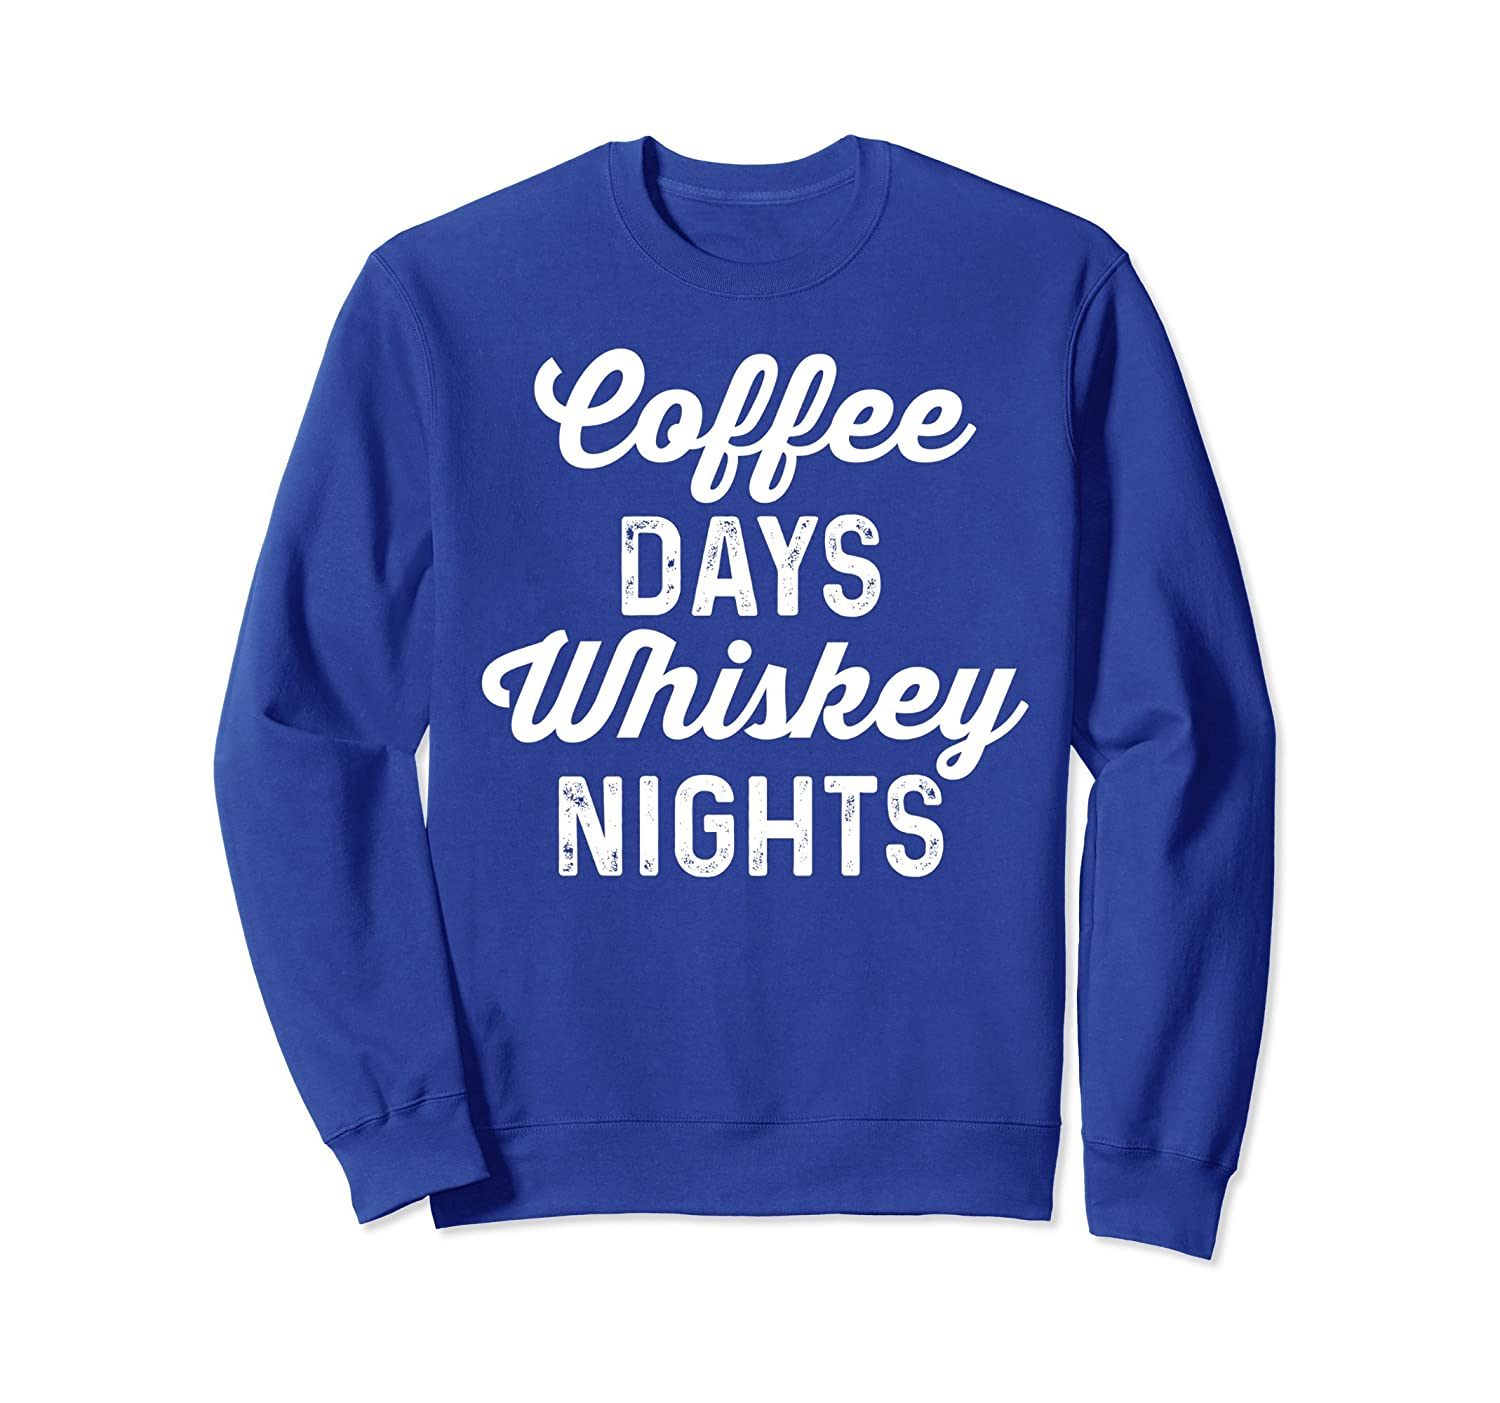 Coffee Days Whiskey Nights Sweatshirt For Men and Women-alottee gift